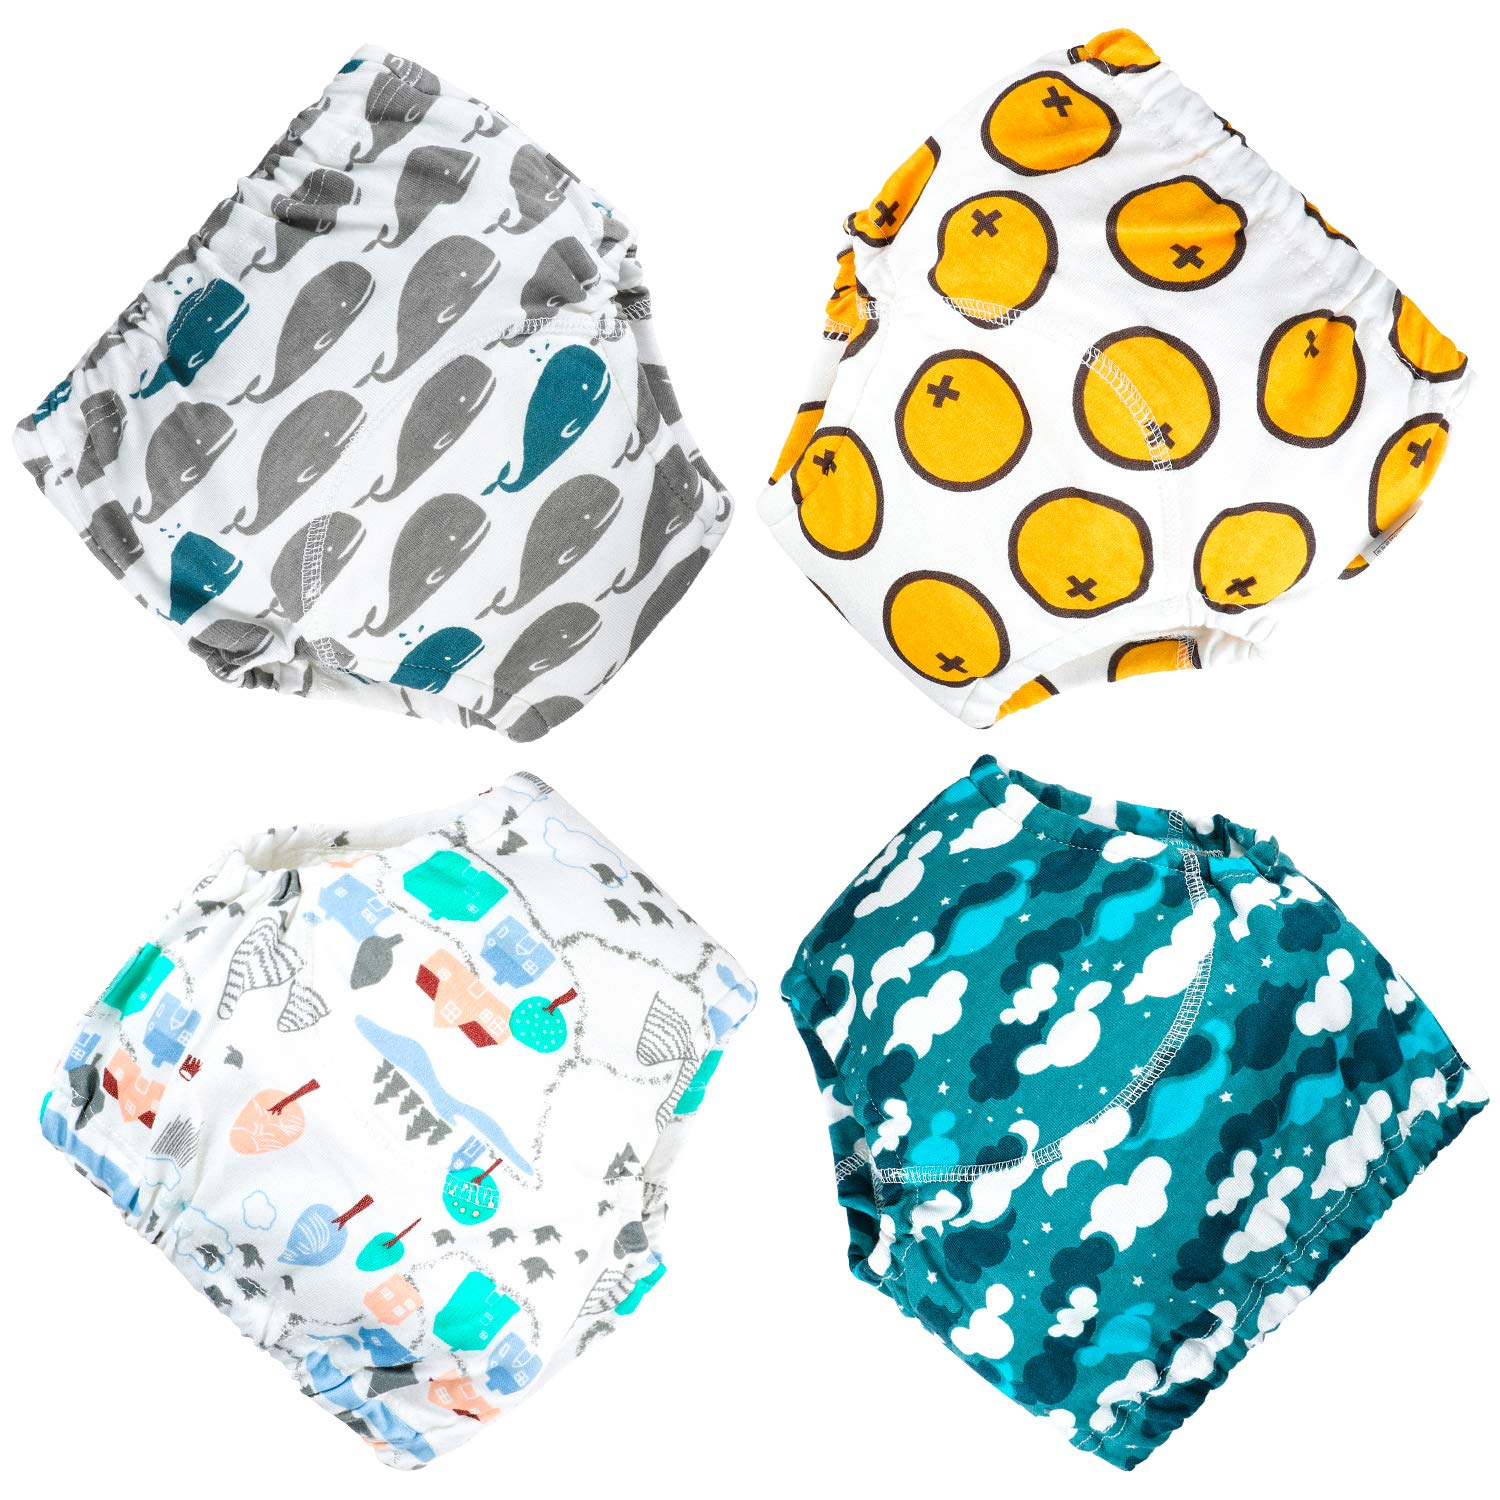 [2020 Newest] 4 Pack Potty Training Pants for Baby and Toddler Boys,Pure Cotton,Adorable and Comfortable